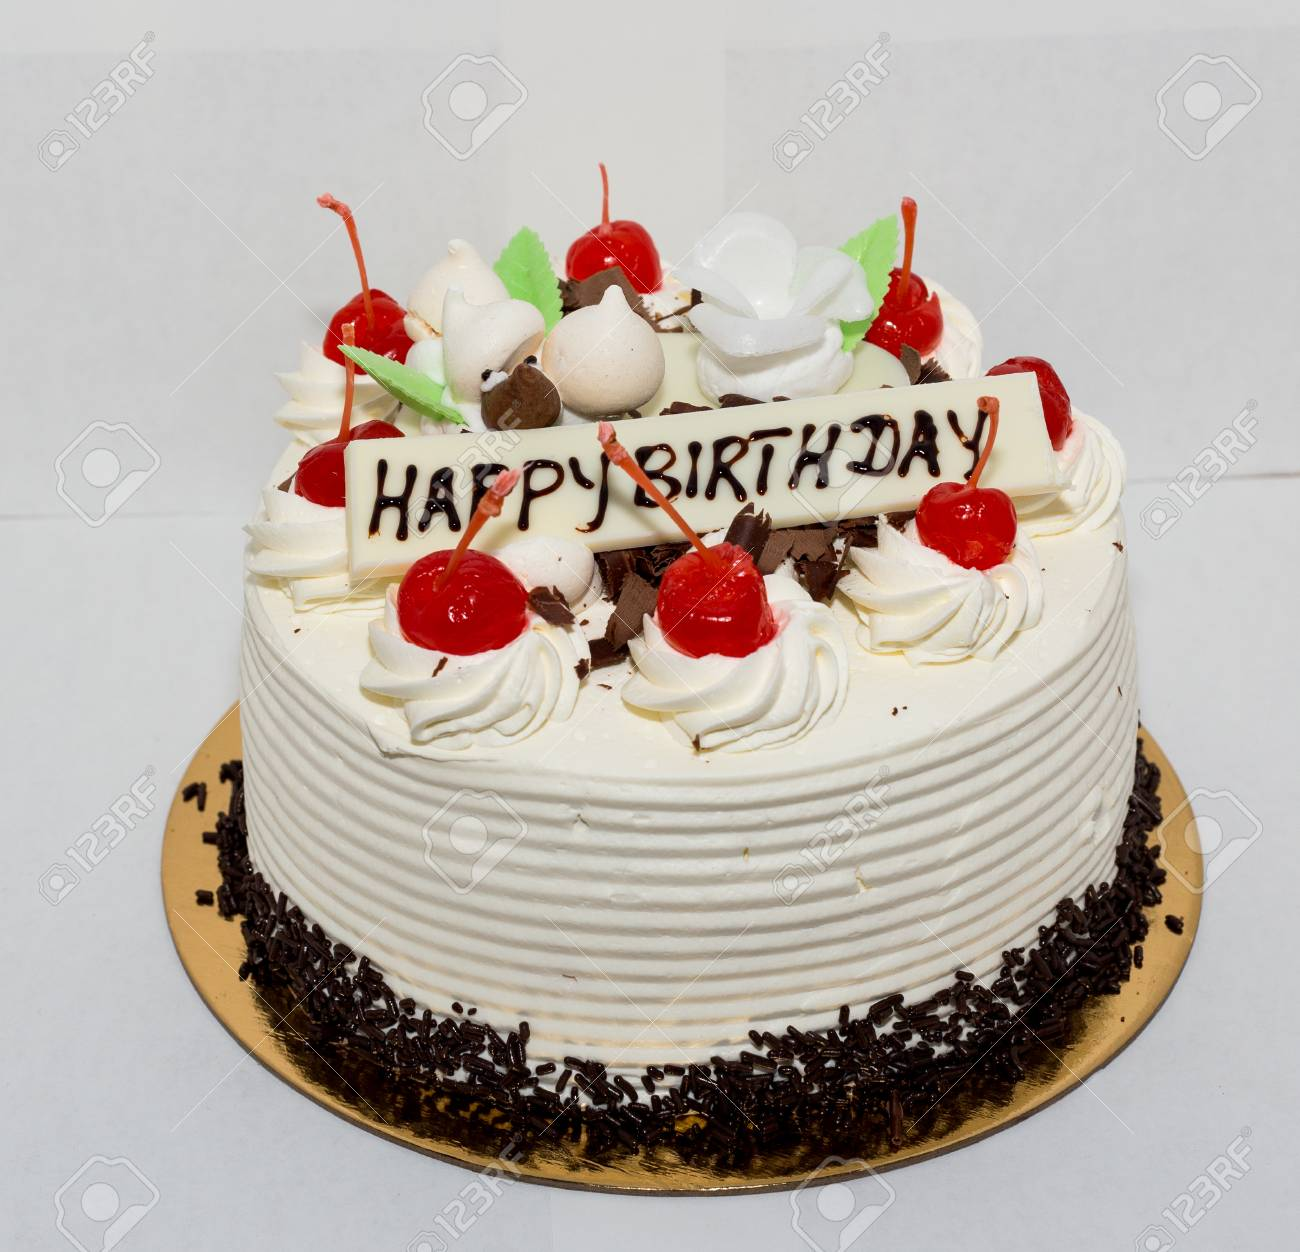 Happy Birthday Cake Images.Black Forest Cake With The Words Happy Birthday